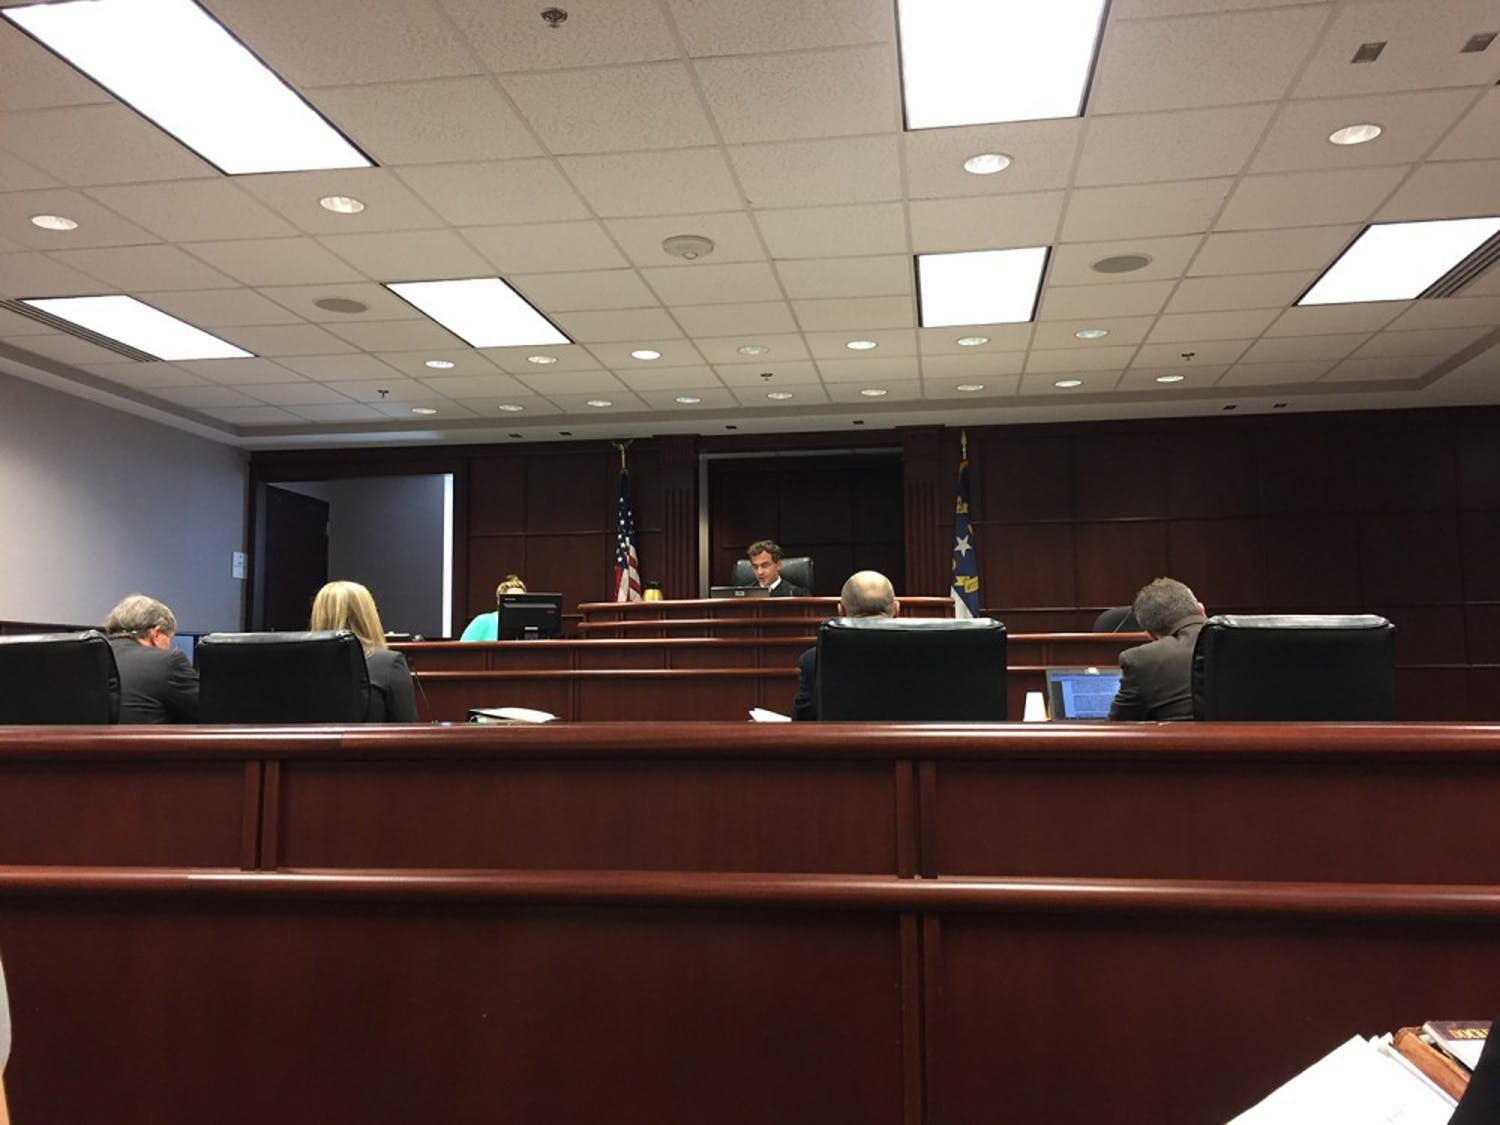 The Daily Tar Heel v. UNC hearing today had lawyers on both sides present their arguments. No resolution was made.